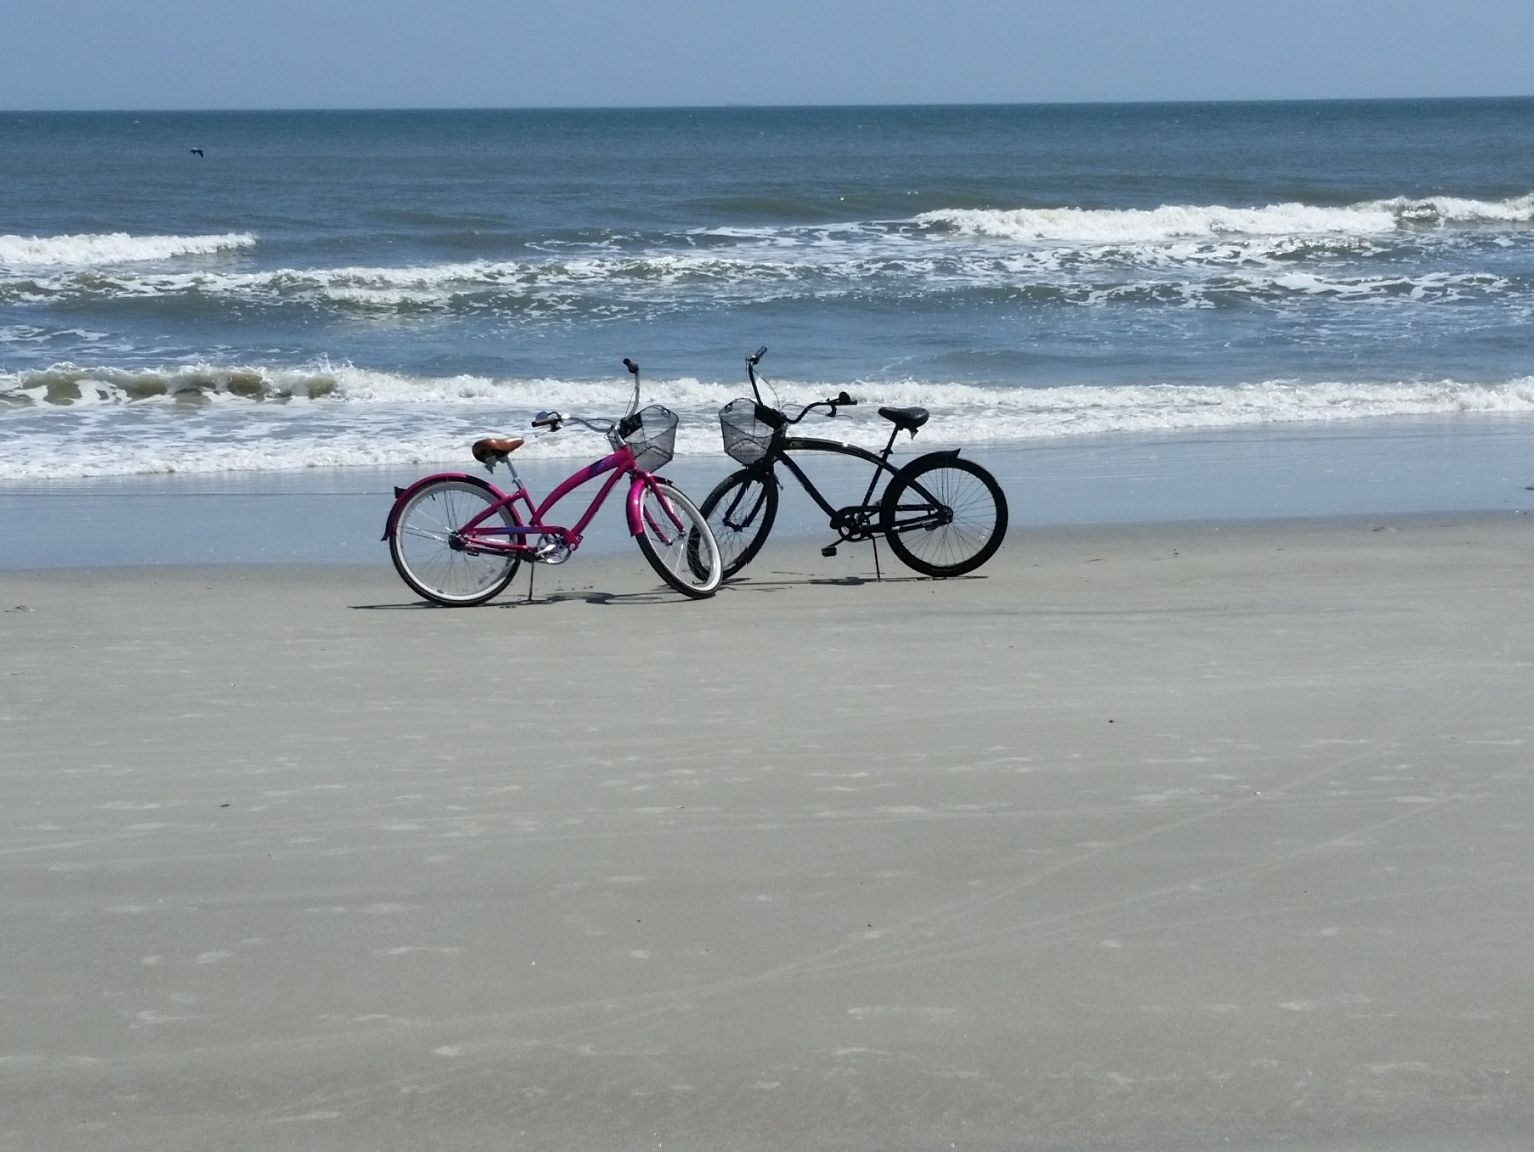 Our bikes on the beach at the entrance from Shipyard